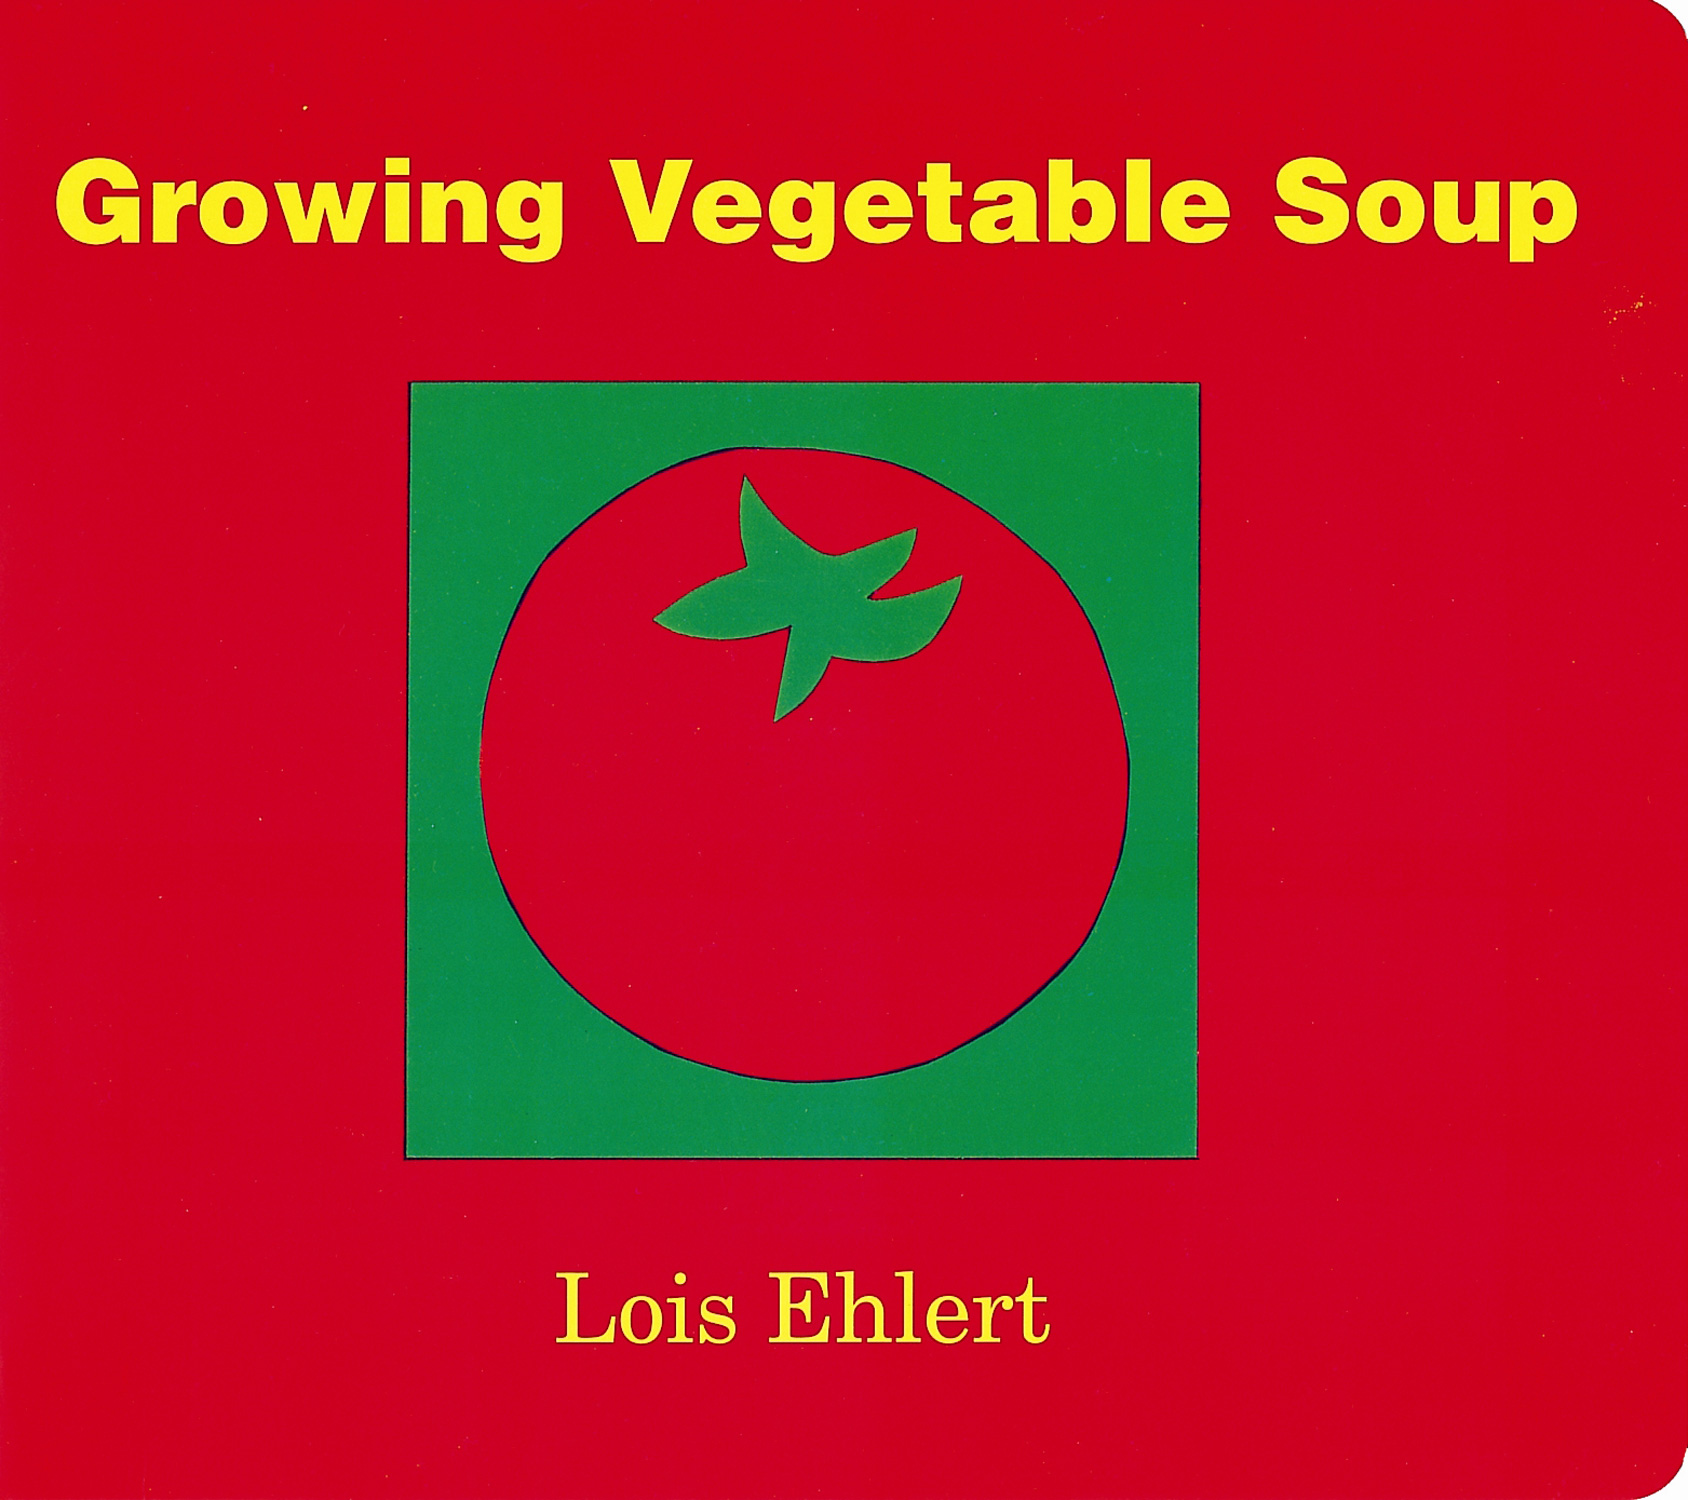 """Growing Vegetable Soup"" by Lois Ehlert"